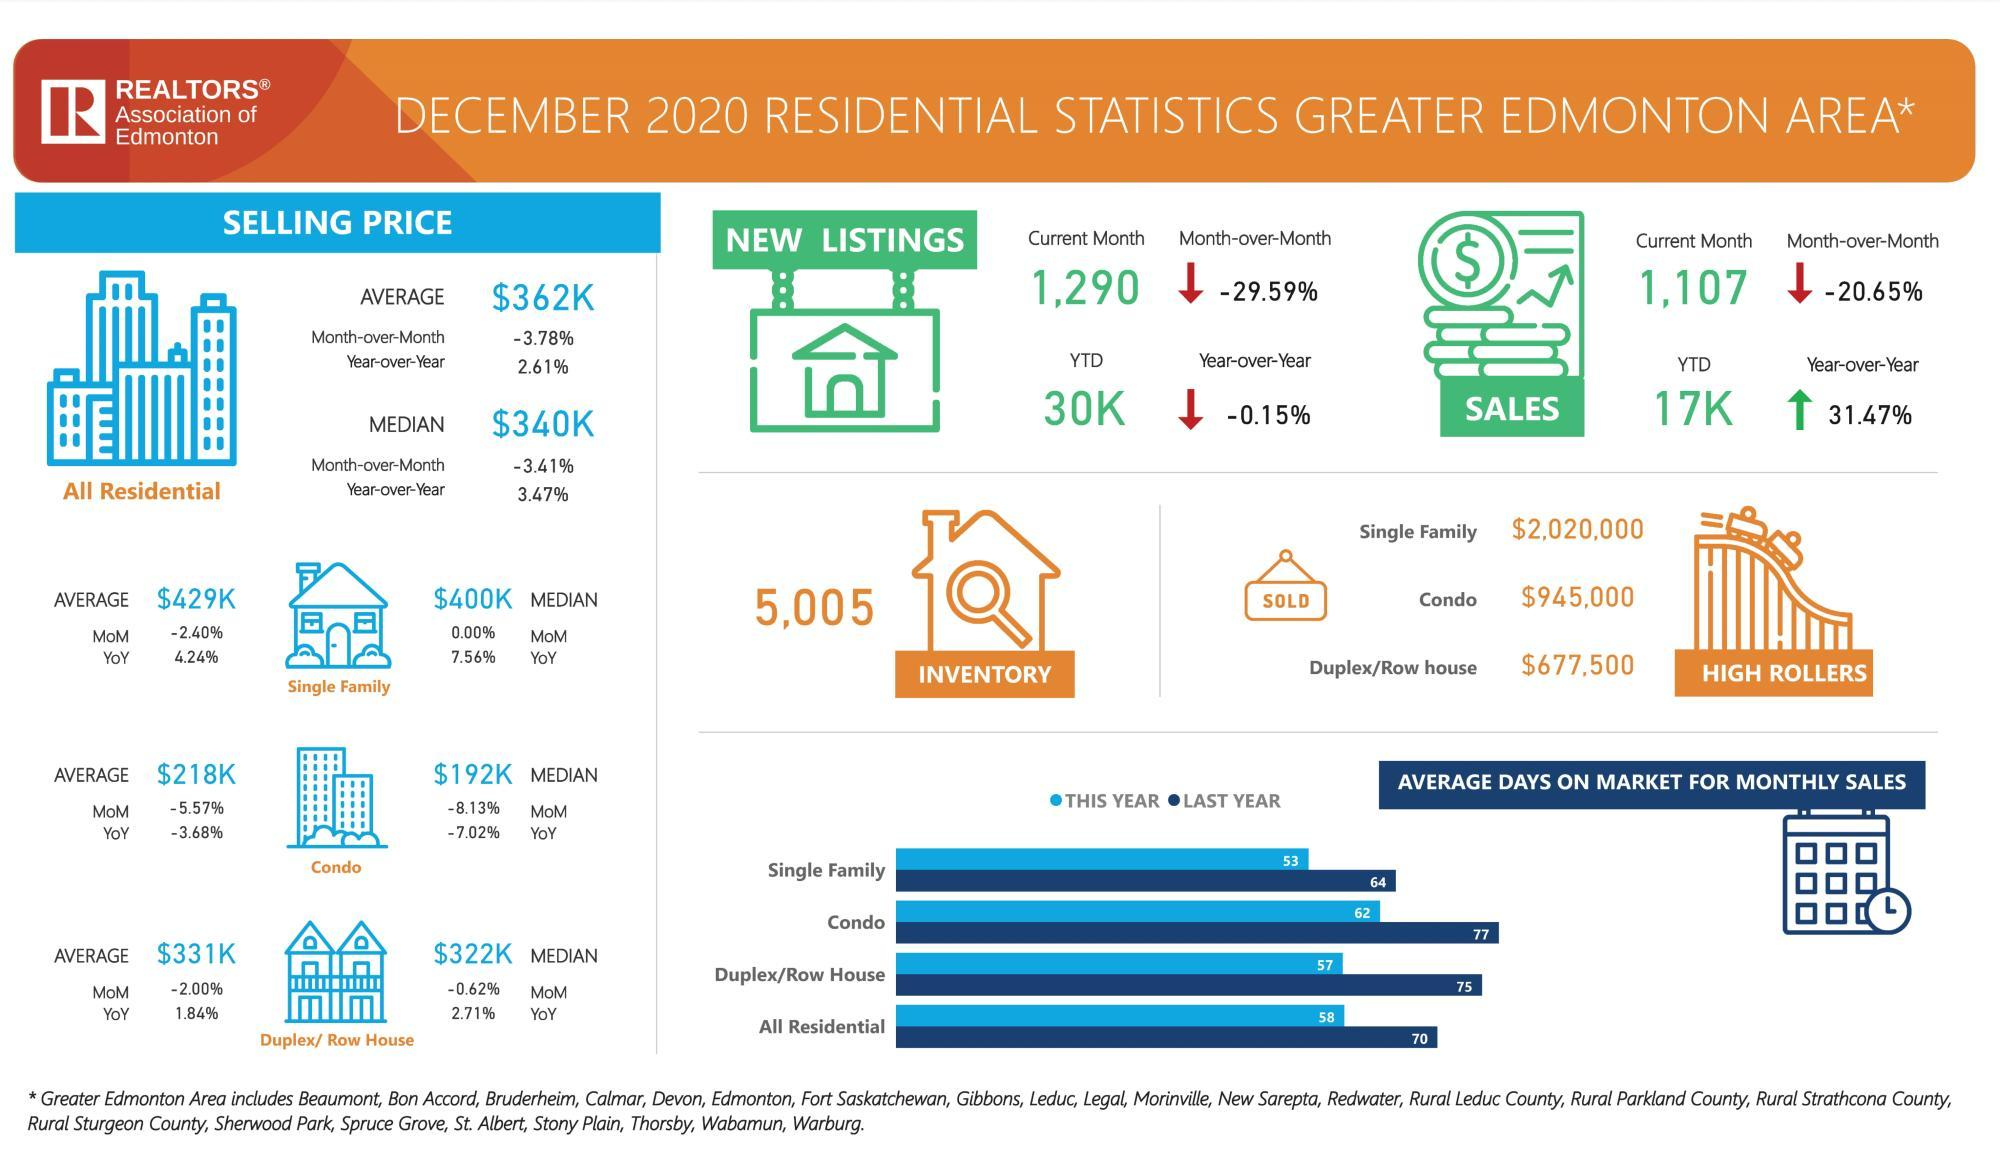 Sales for Edmonton area during December 2020